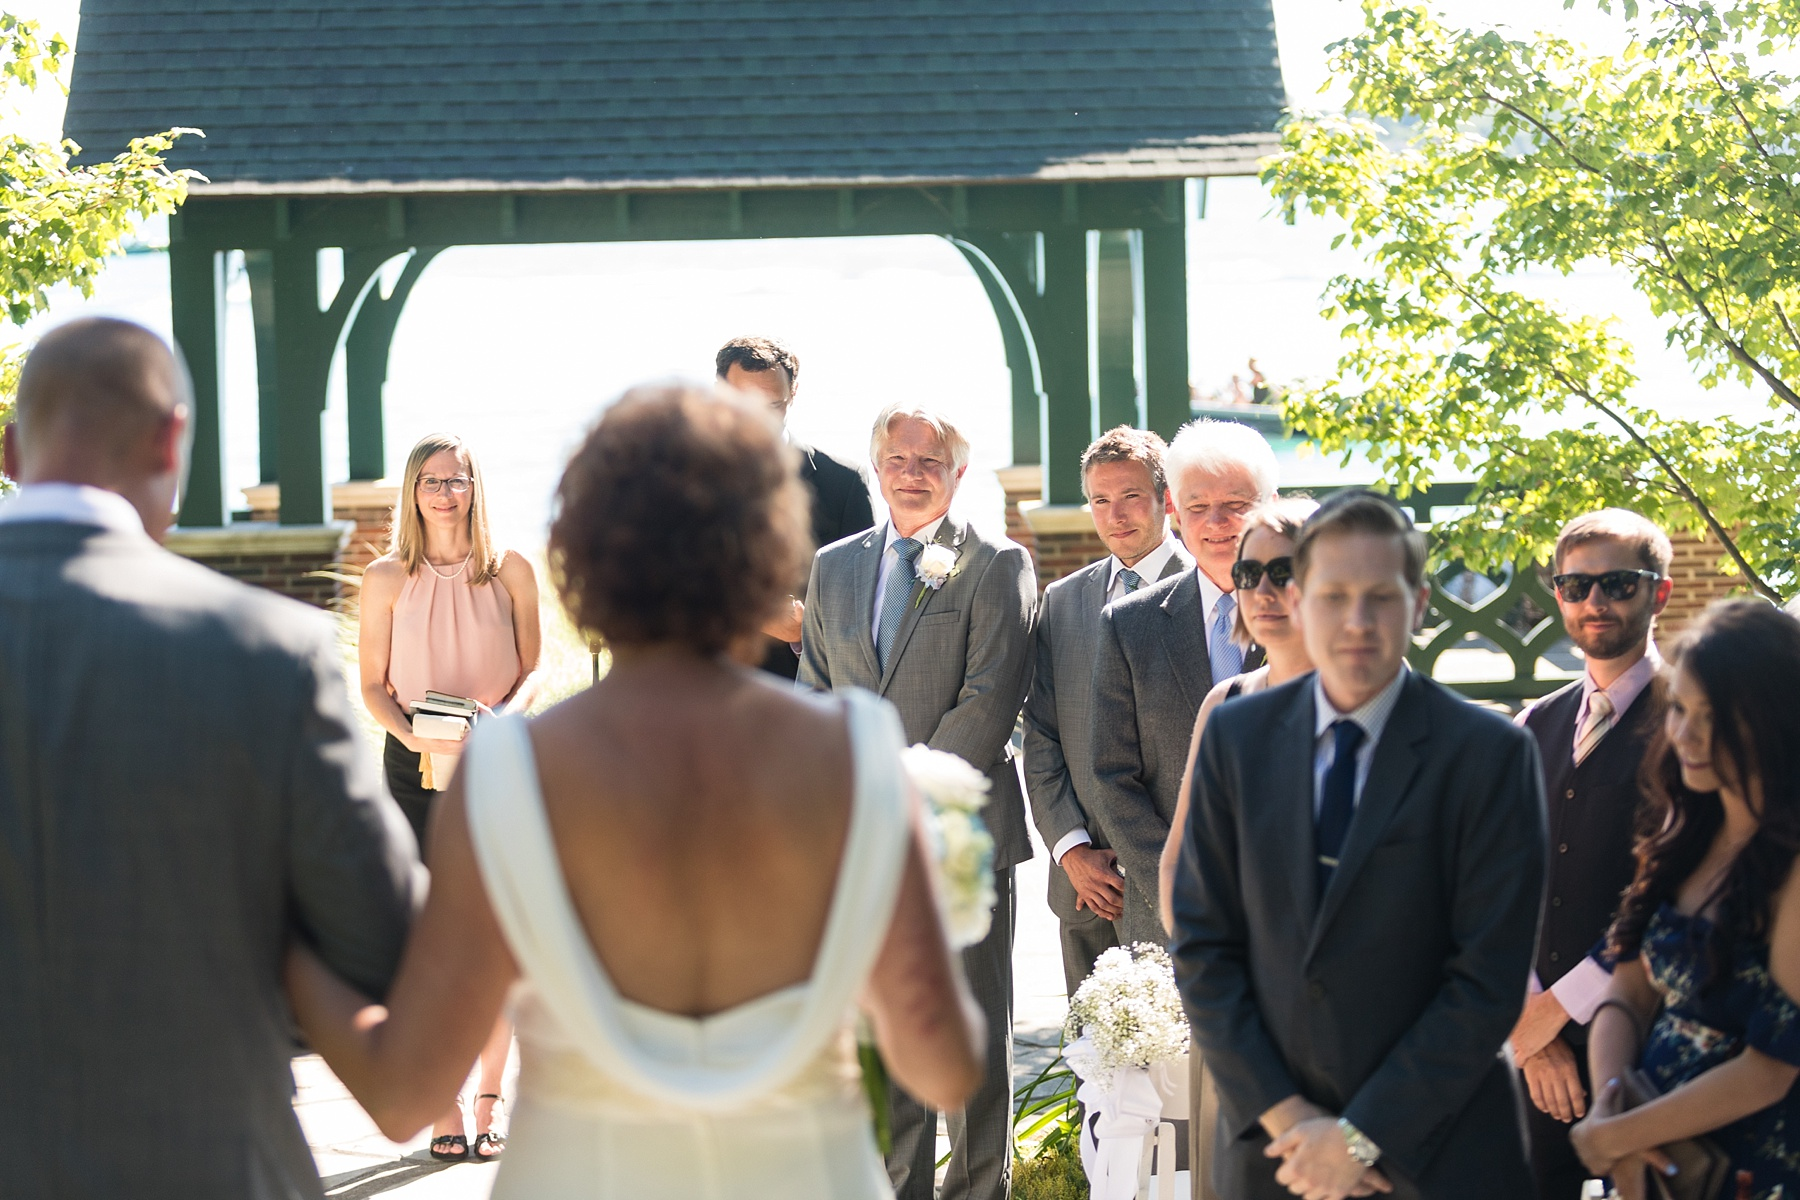 Brandon_Shafer_Photography_Lori_Wes_Gull_Lake_Wedding_0021.jpg